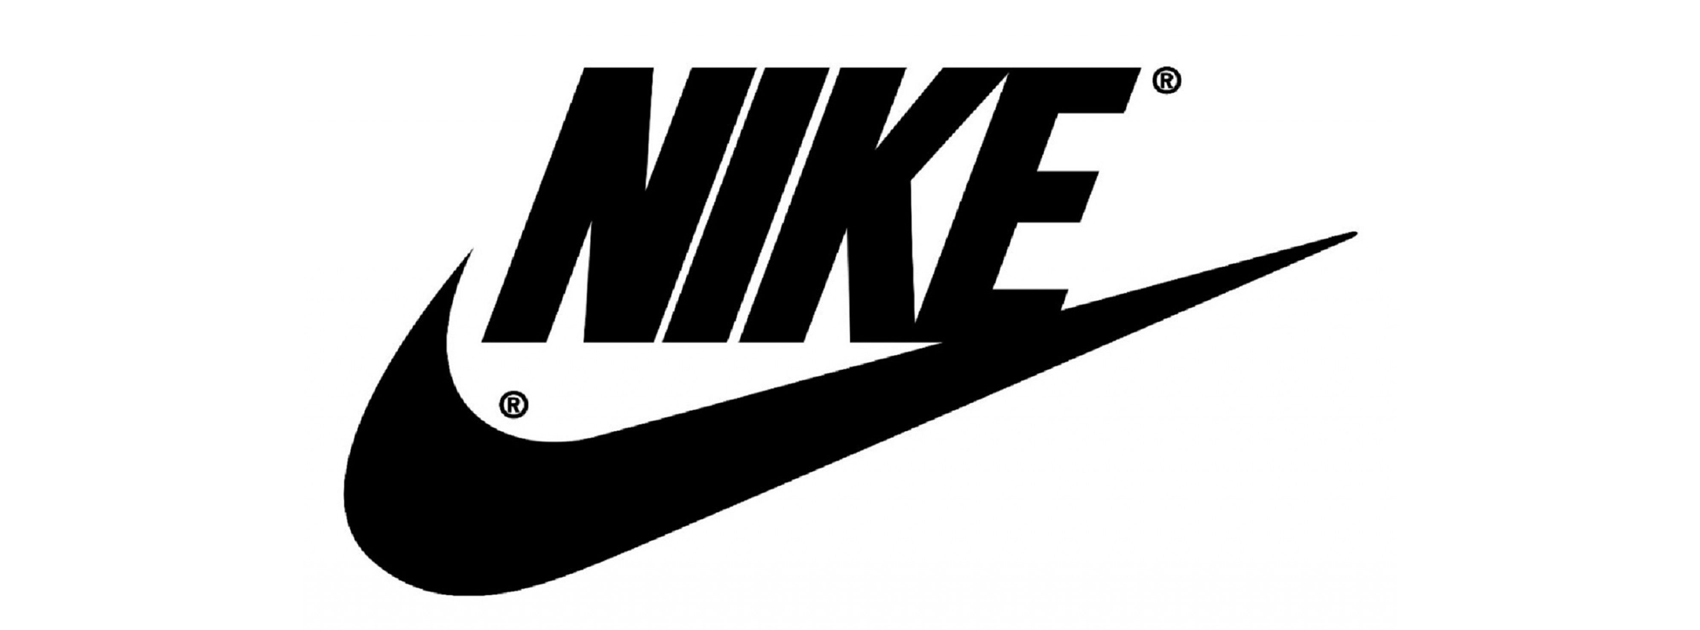 Nike Unknown Facts,Inspiring Facts about Nike, Interesting Facts 2019, Most Interesting Facts, Real history of Nike, startup stories, Surprising Facts About Nike, Nike Amazing Facts, Nike Facts, Nike Facts 2019, Nike Interesting Facts, Nike Latest News, Nike Success Story,nike founder